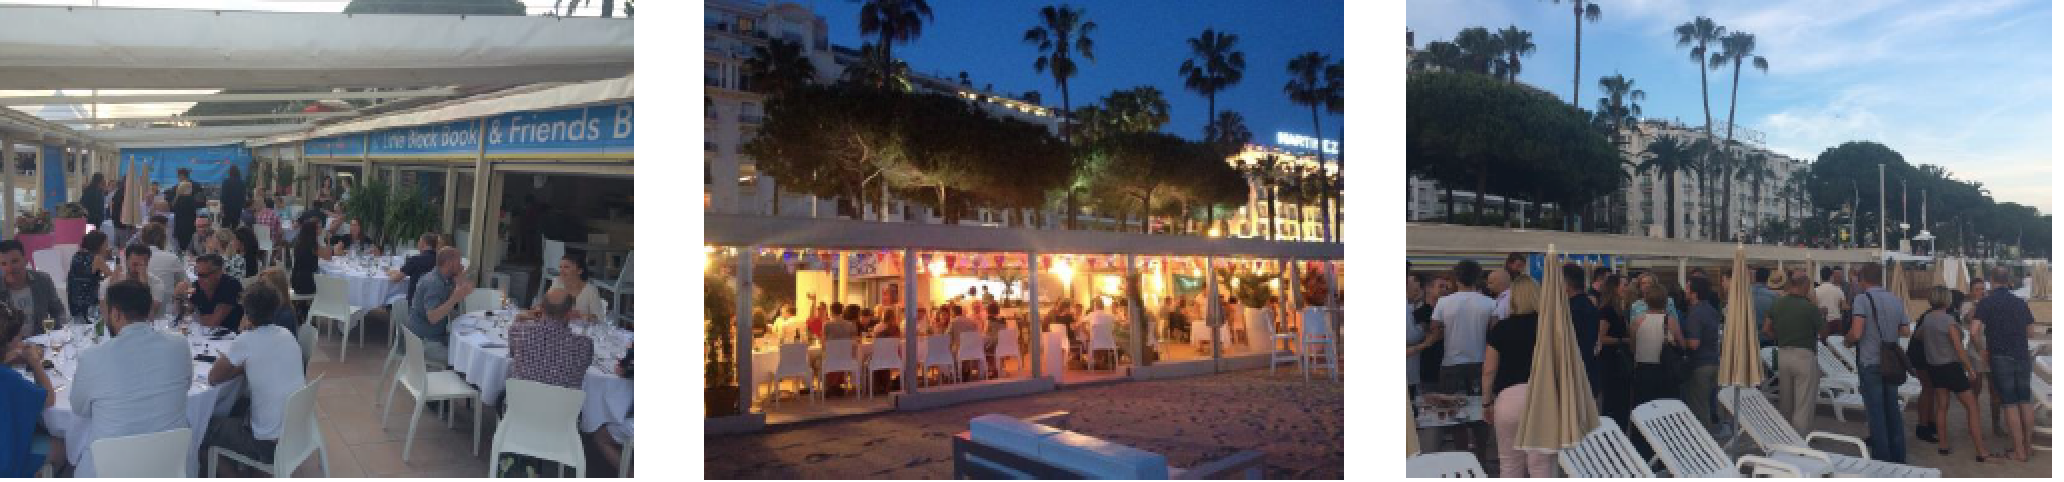 LBB & Friends are back on the beach for Cannes 2019 – and LBB members from OZ/NZ are invited